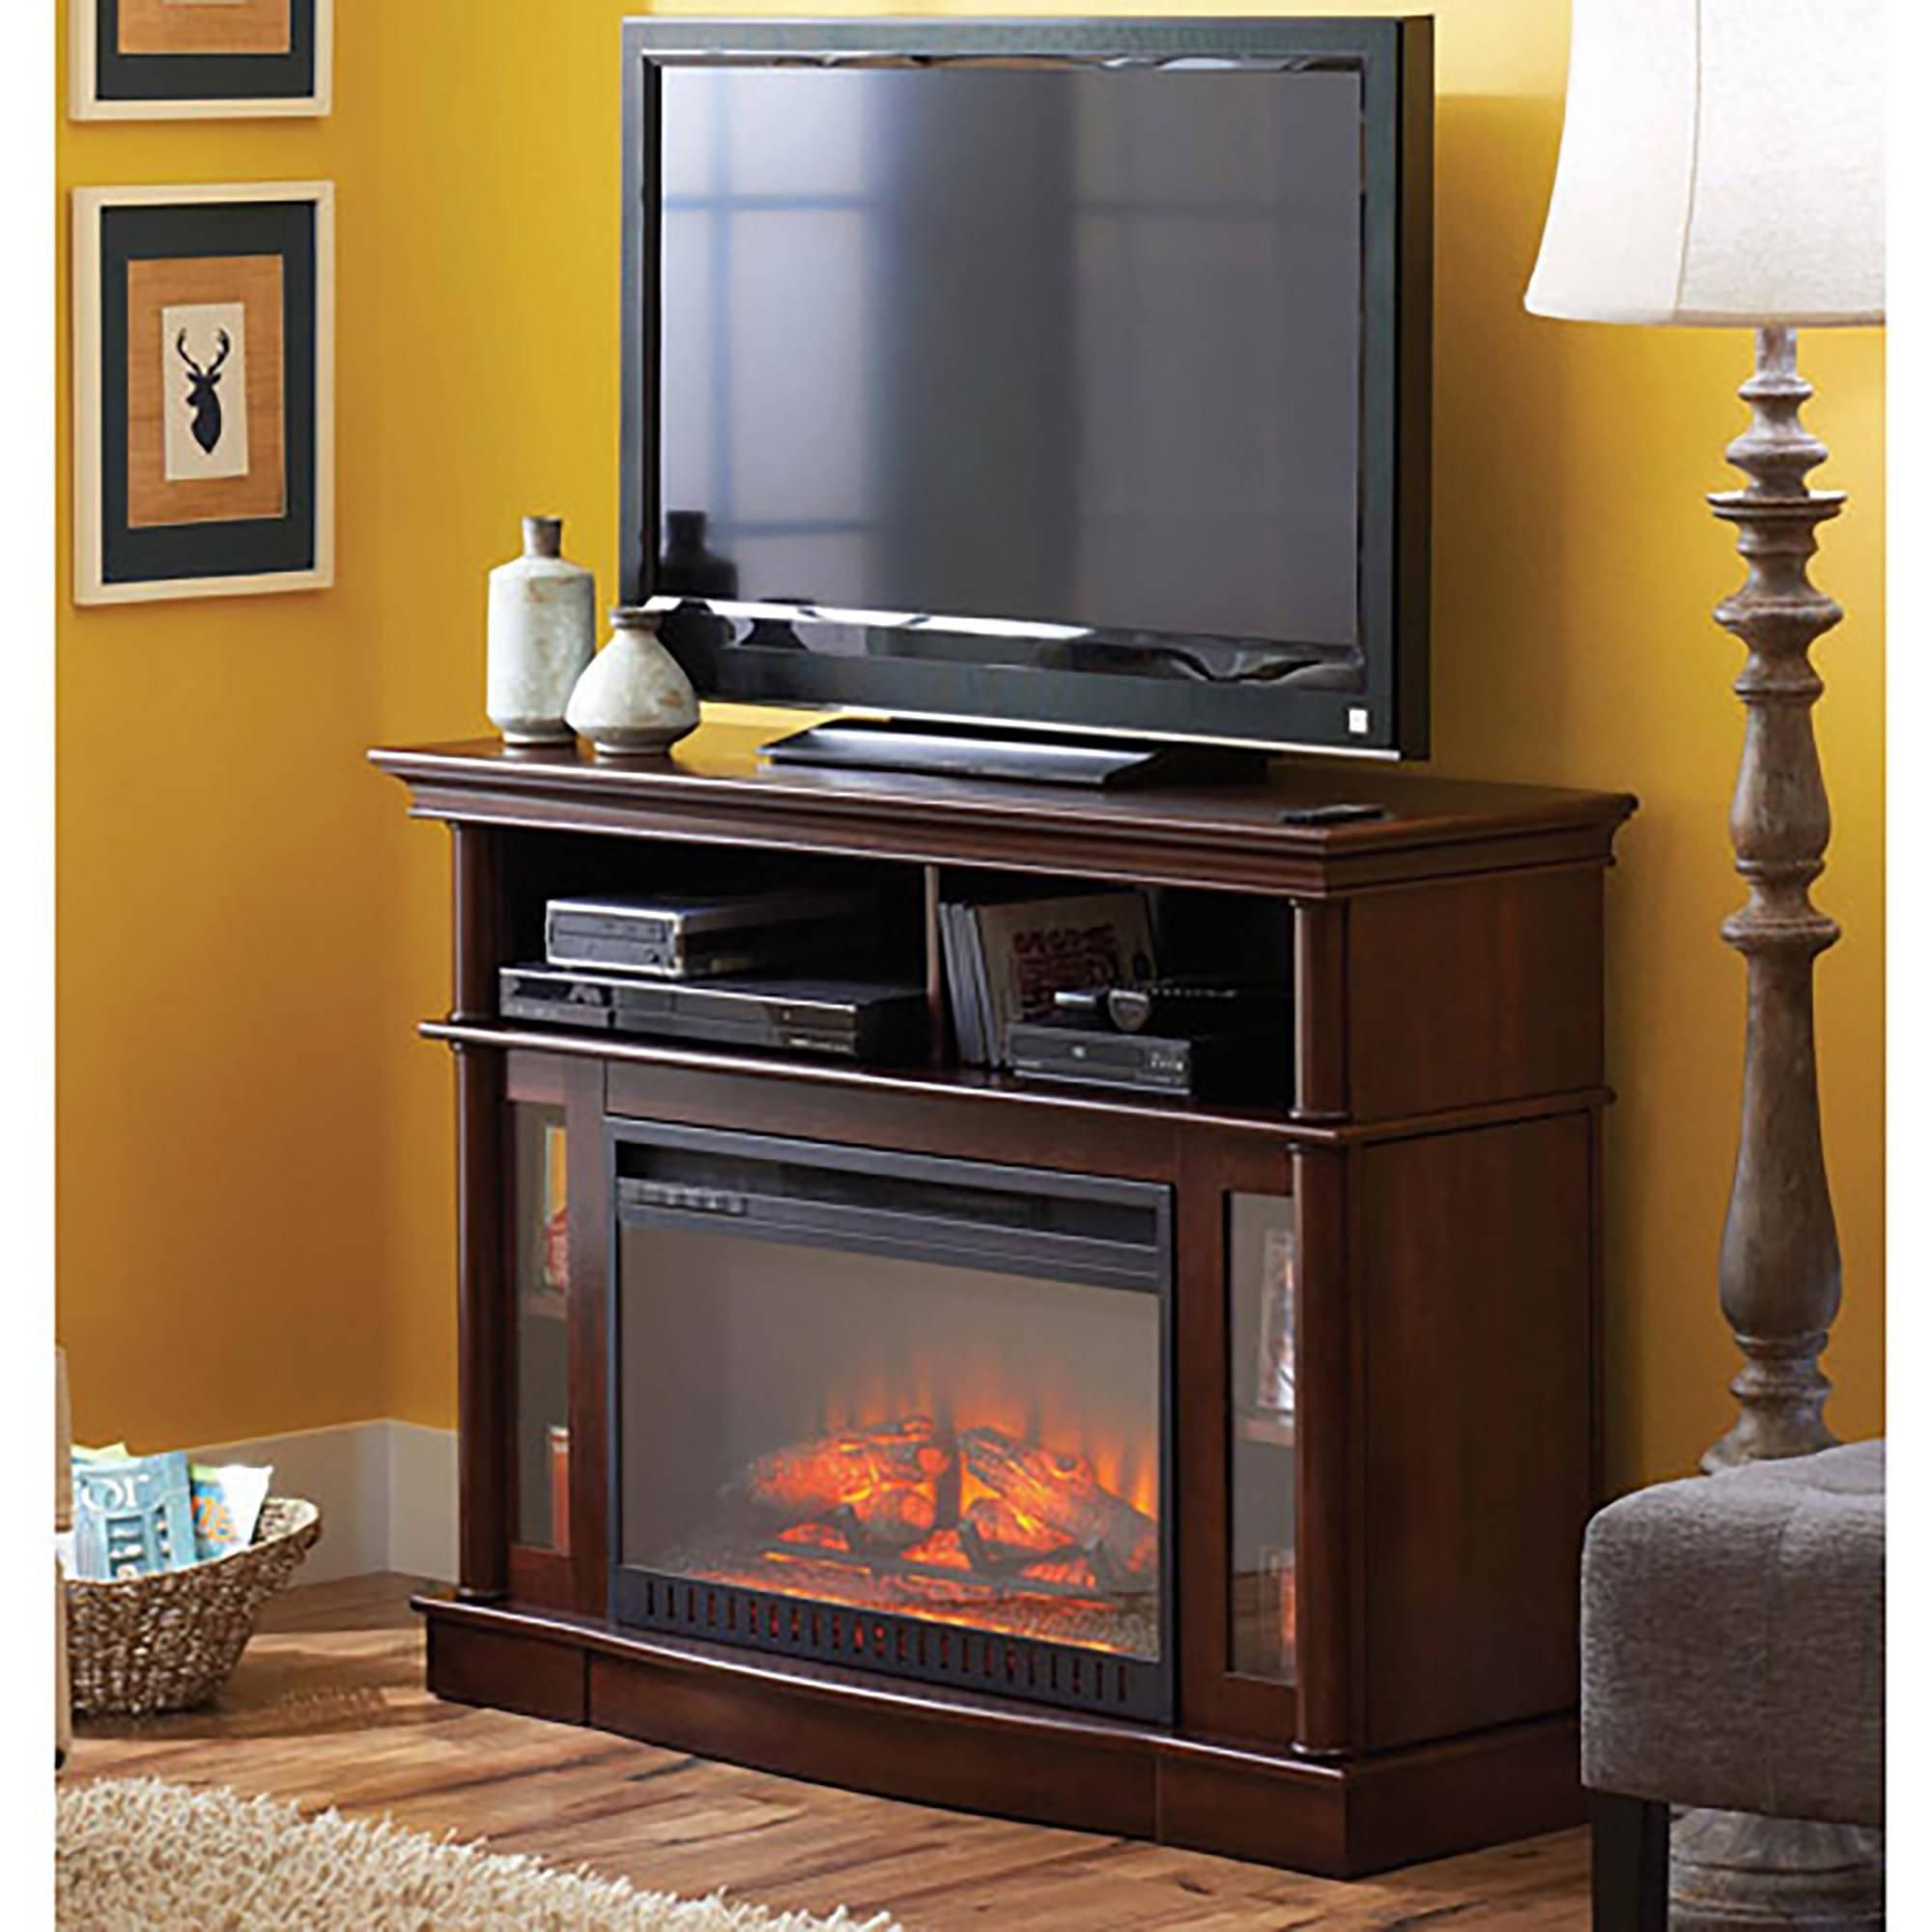 10 diy tv stand ideas you can try at home fireplace tv